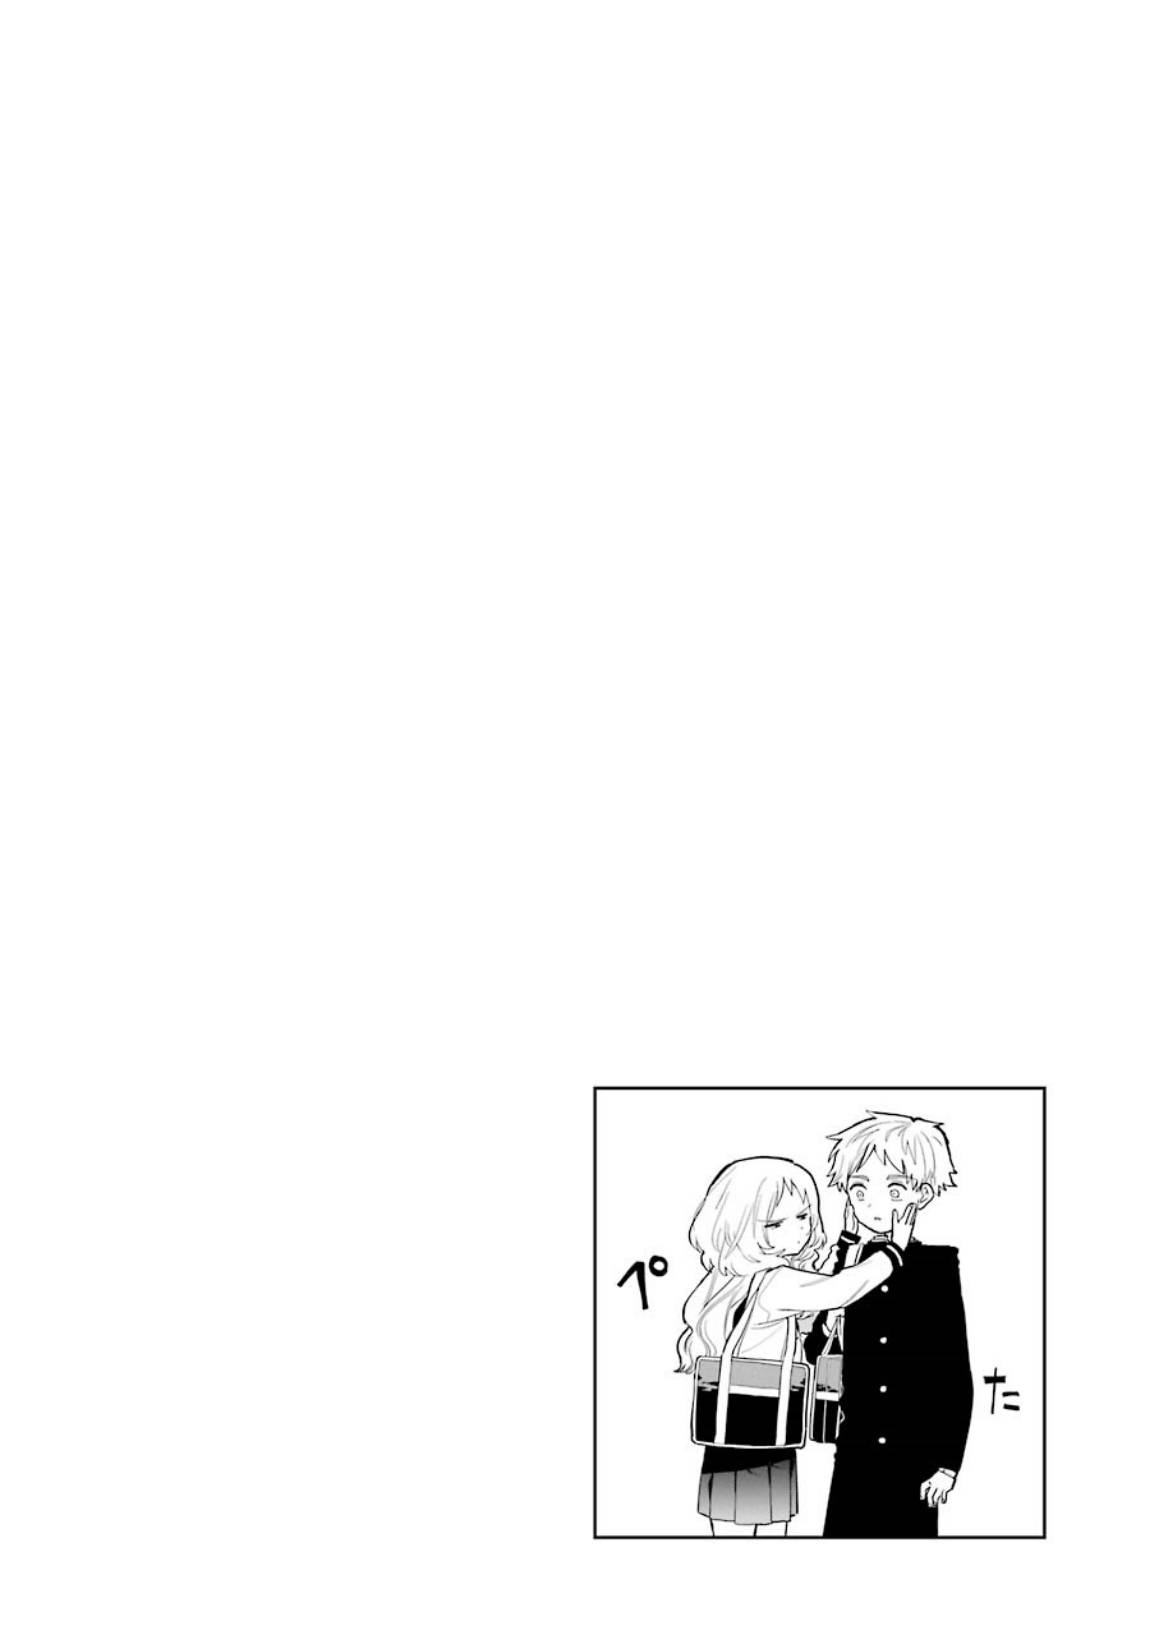 Sukinako ga Megane wo Wasureta Chapter 33